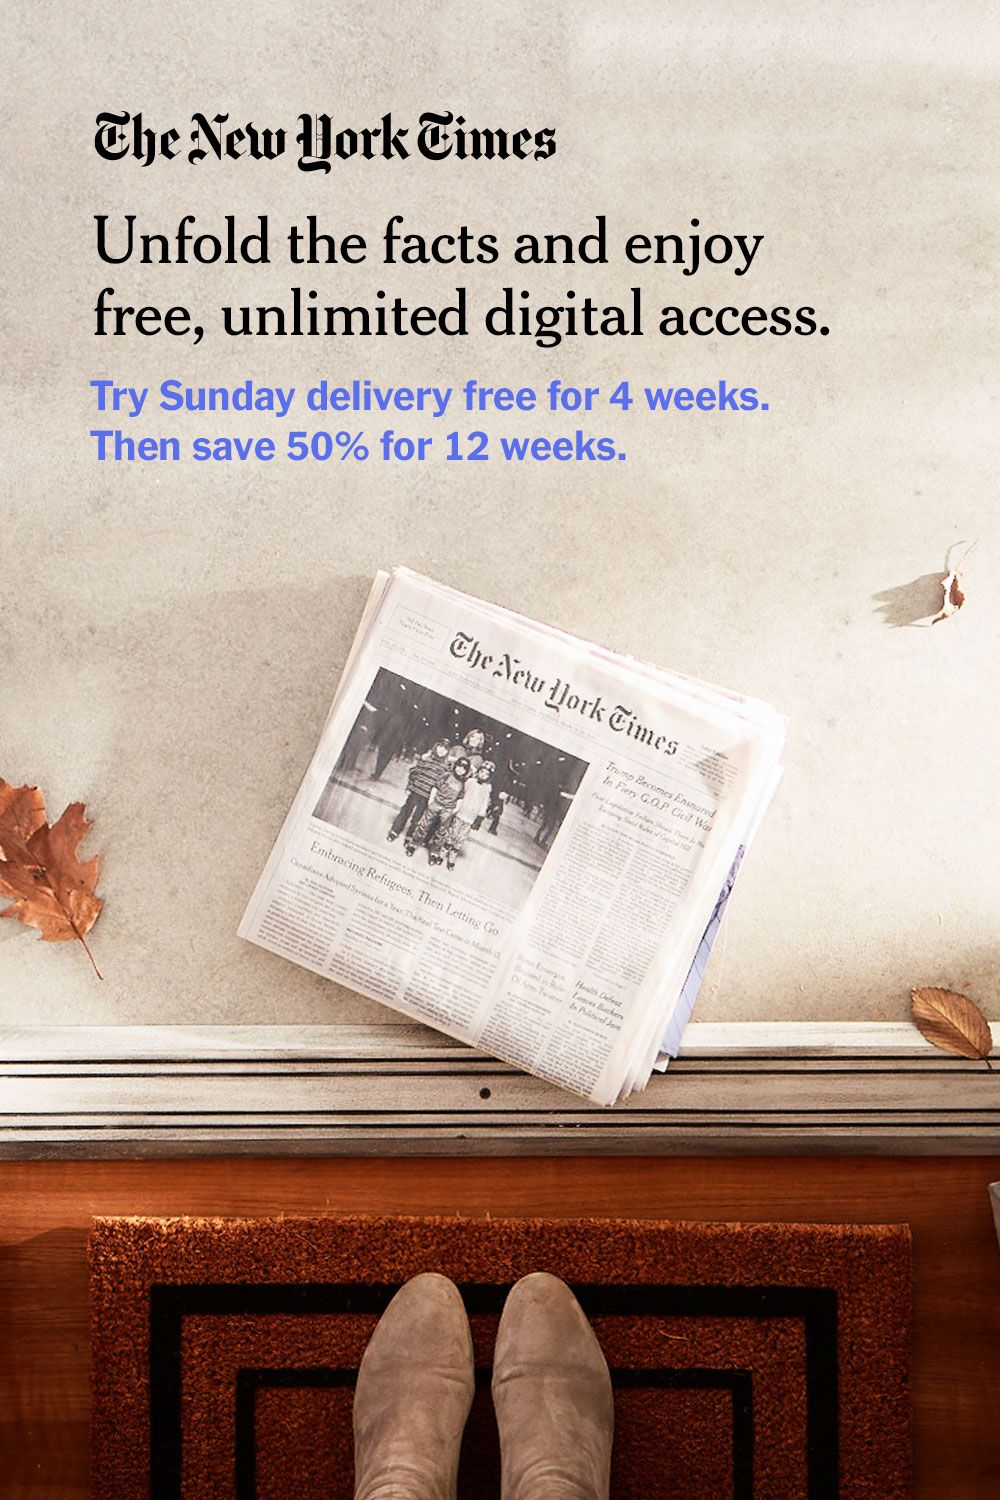 Enjoy Two Bonus Subscriptions To Share Free Unlimited Digital